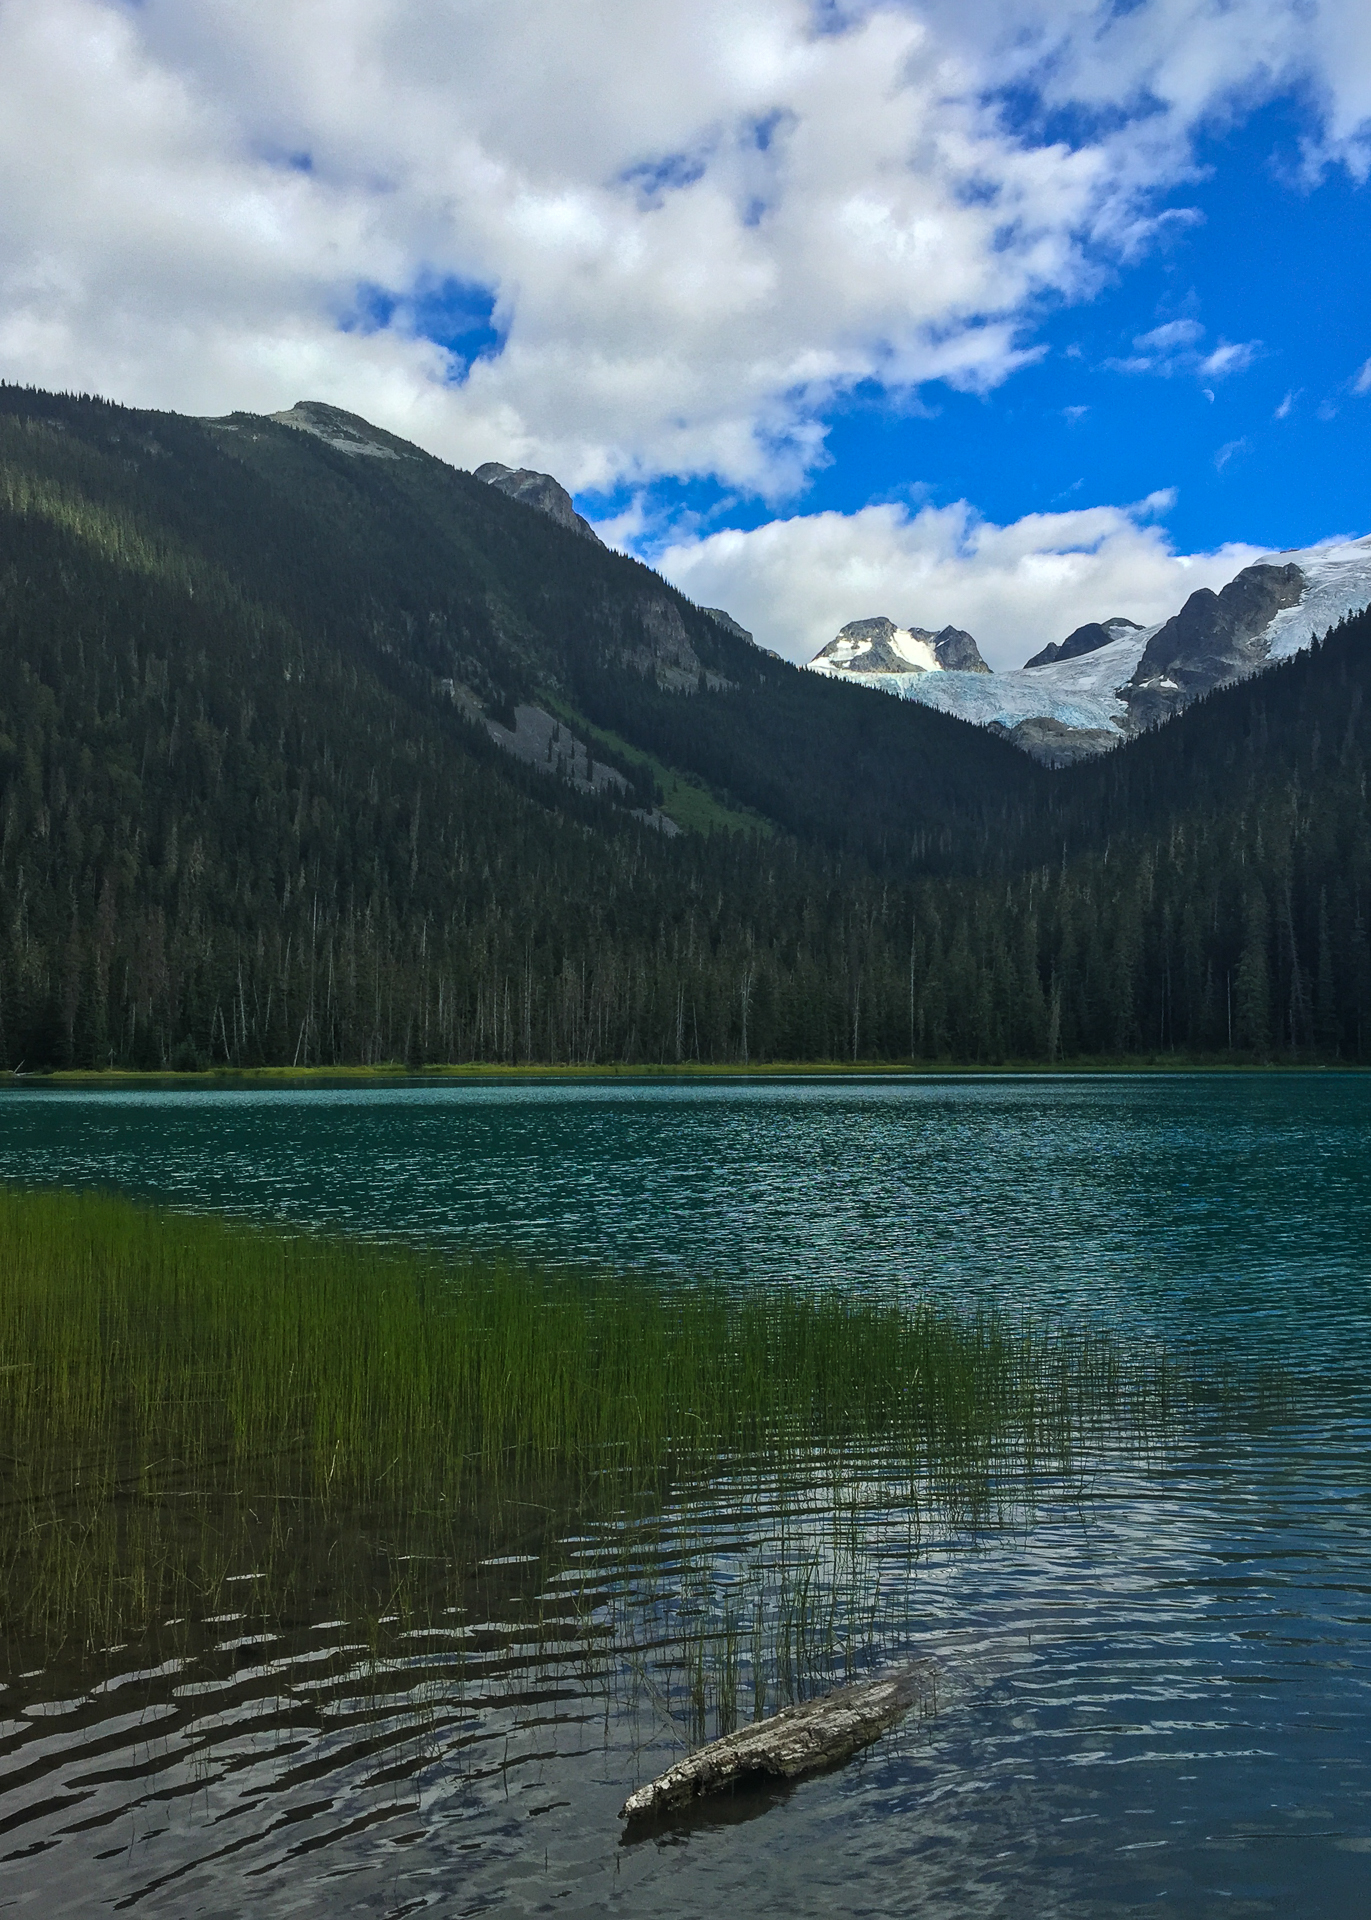 Lower Joffre Lake and the Glacier